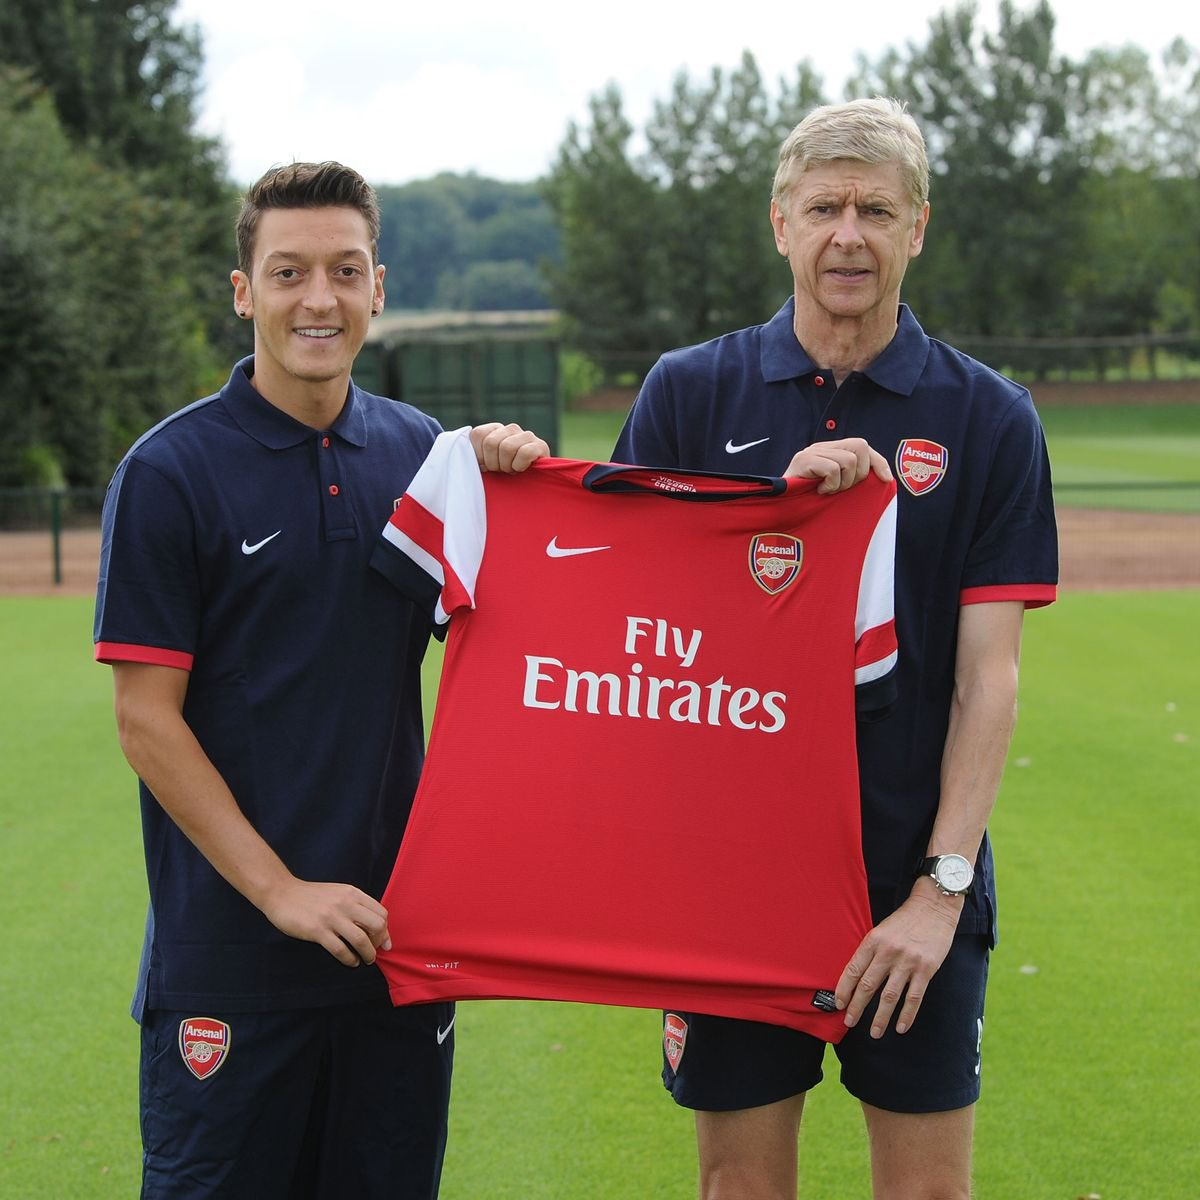 Words genuinely can't express how sad I am right now but all good things must come to an end. At the end of the day i'm happy that someone like Ozil came to play for my club and I am fully grateful for his service over the years.   Hope he does well wherever he goes ❤️❤️